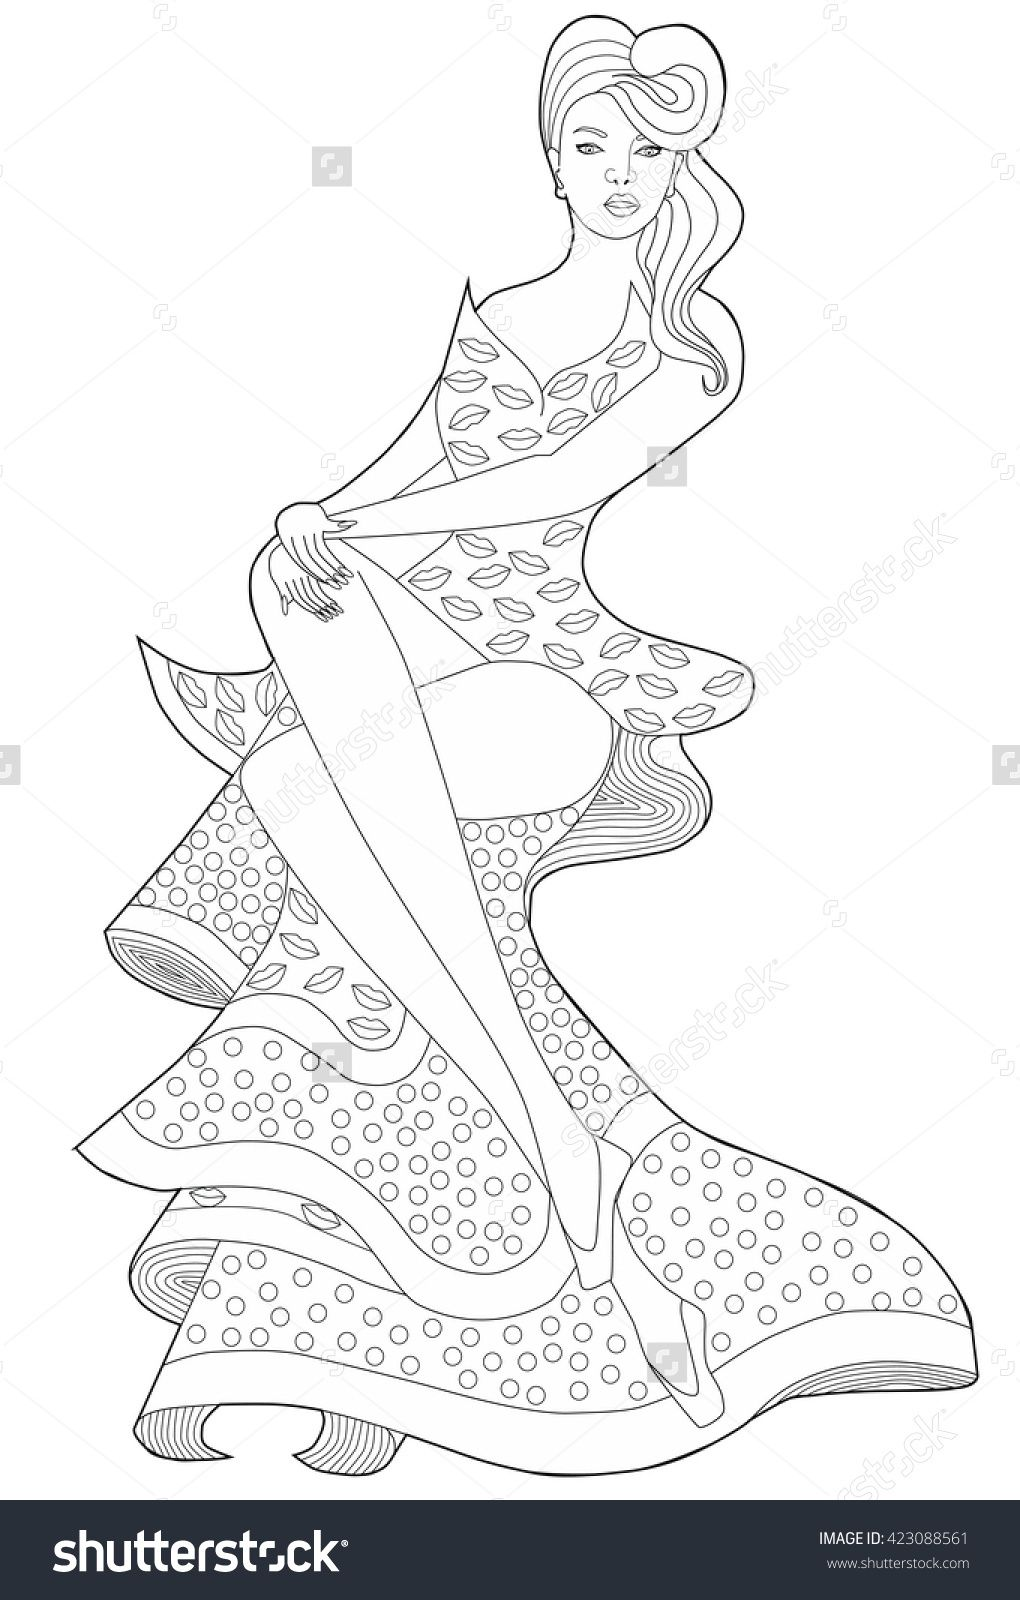 coloring book page for adults sitting in a long dress